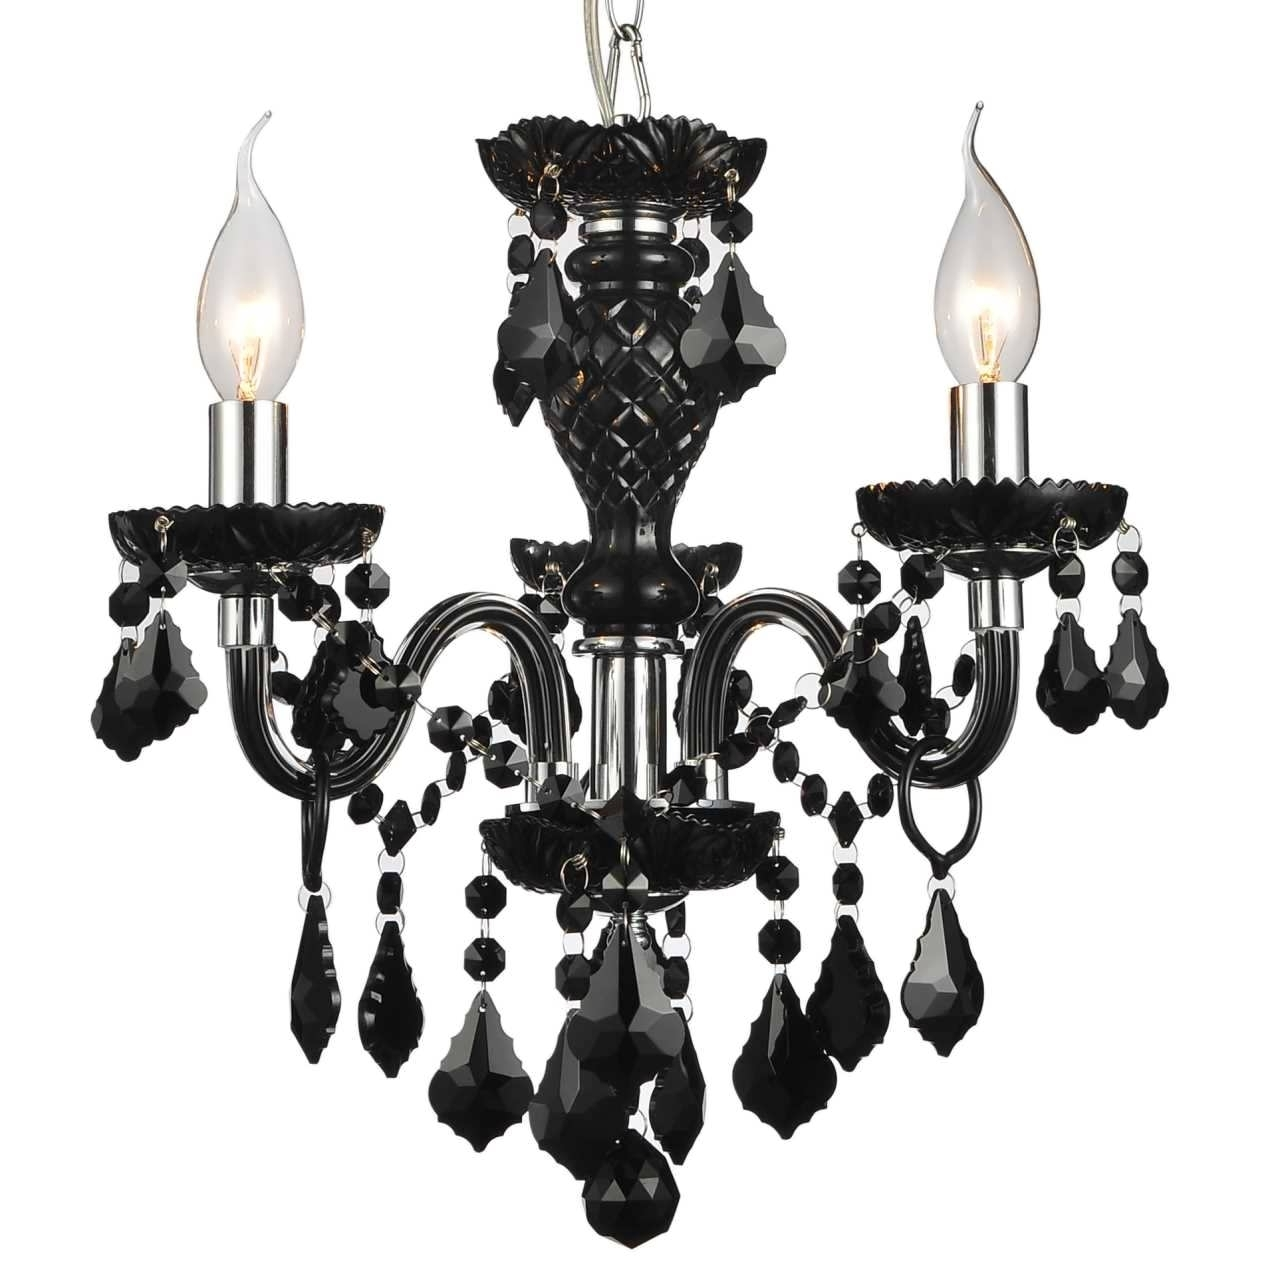 Black Gothic Chandelier Pertaining To Best And Newest Chandeliers Design : Fabulous Gothic Chandelier Black Wrought Iron (View 6 of 20)